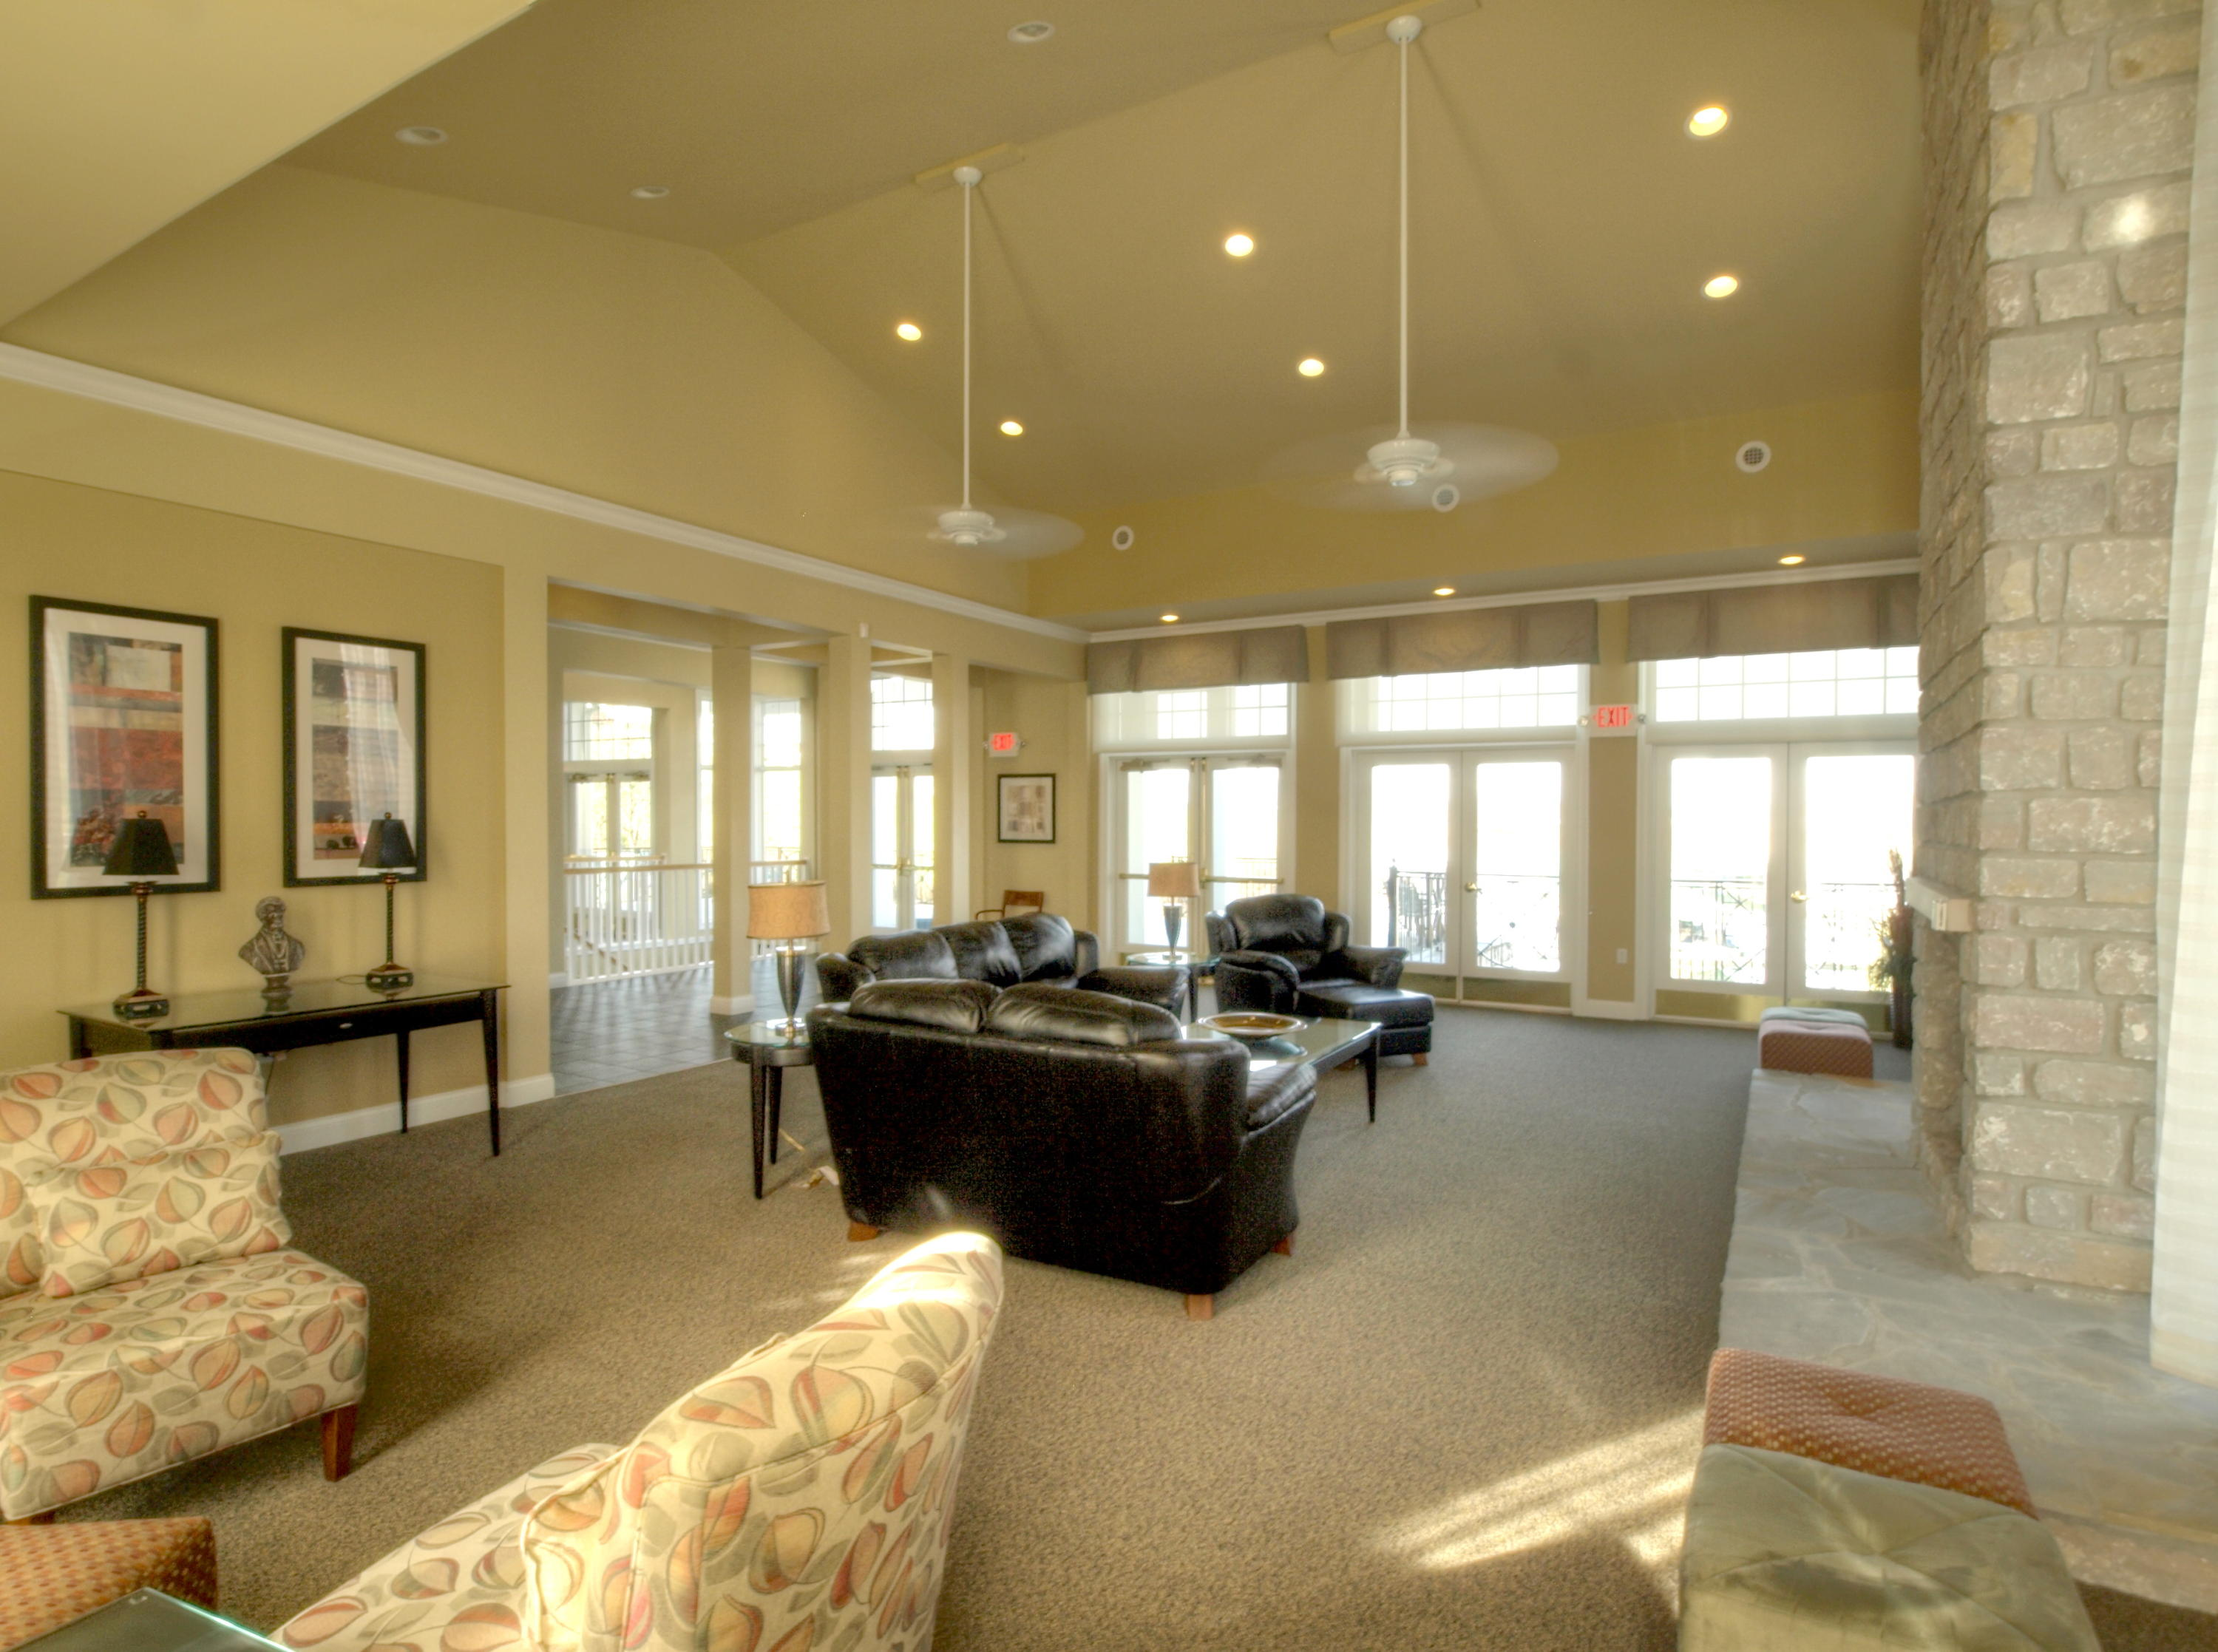 Lot 595 Russell Brothers Rd: